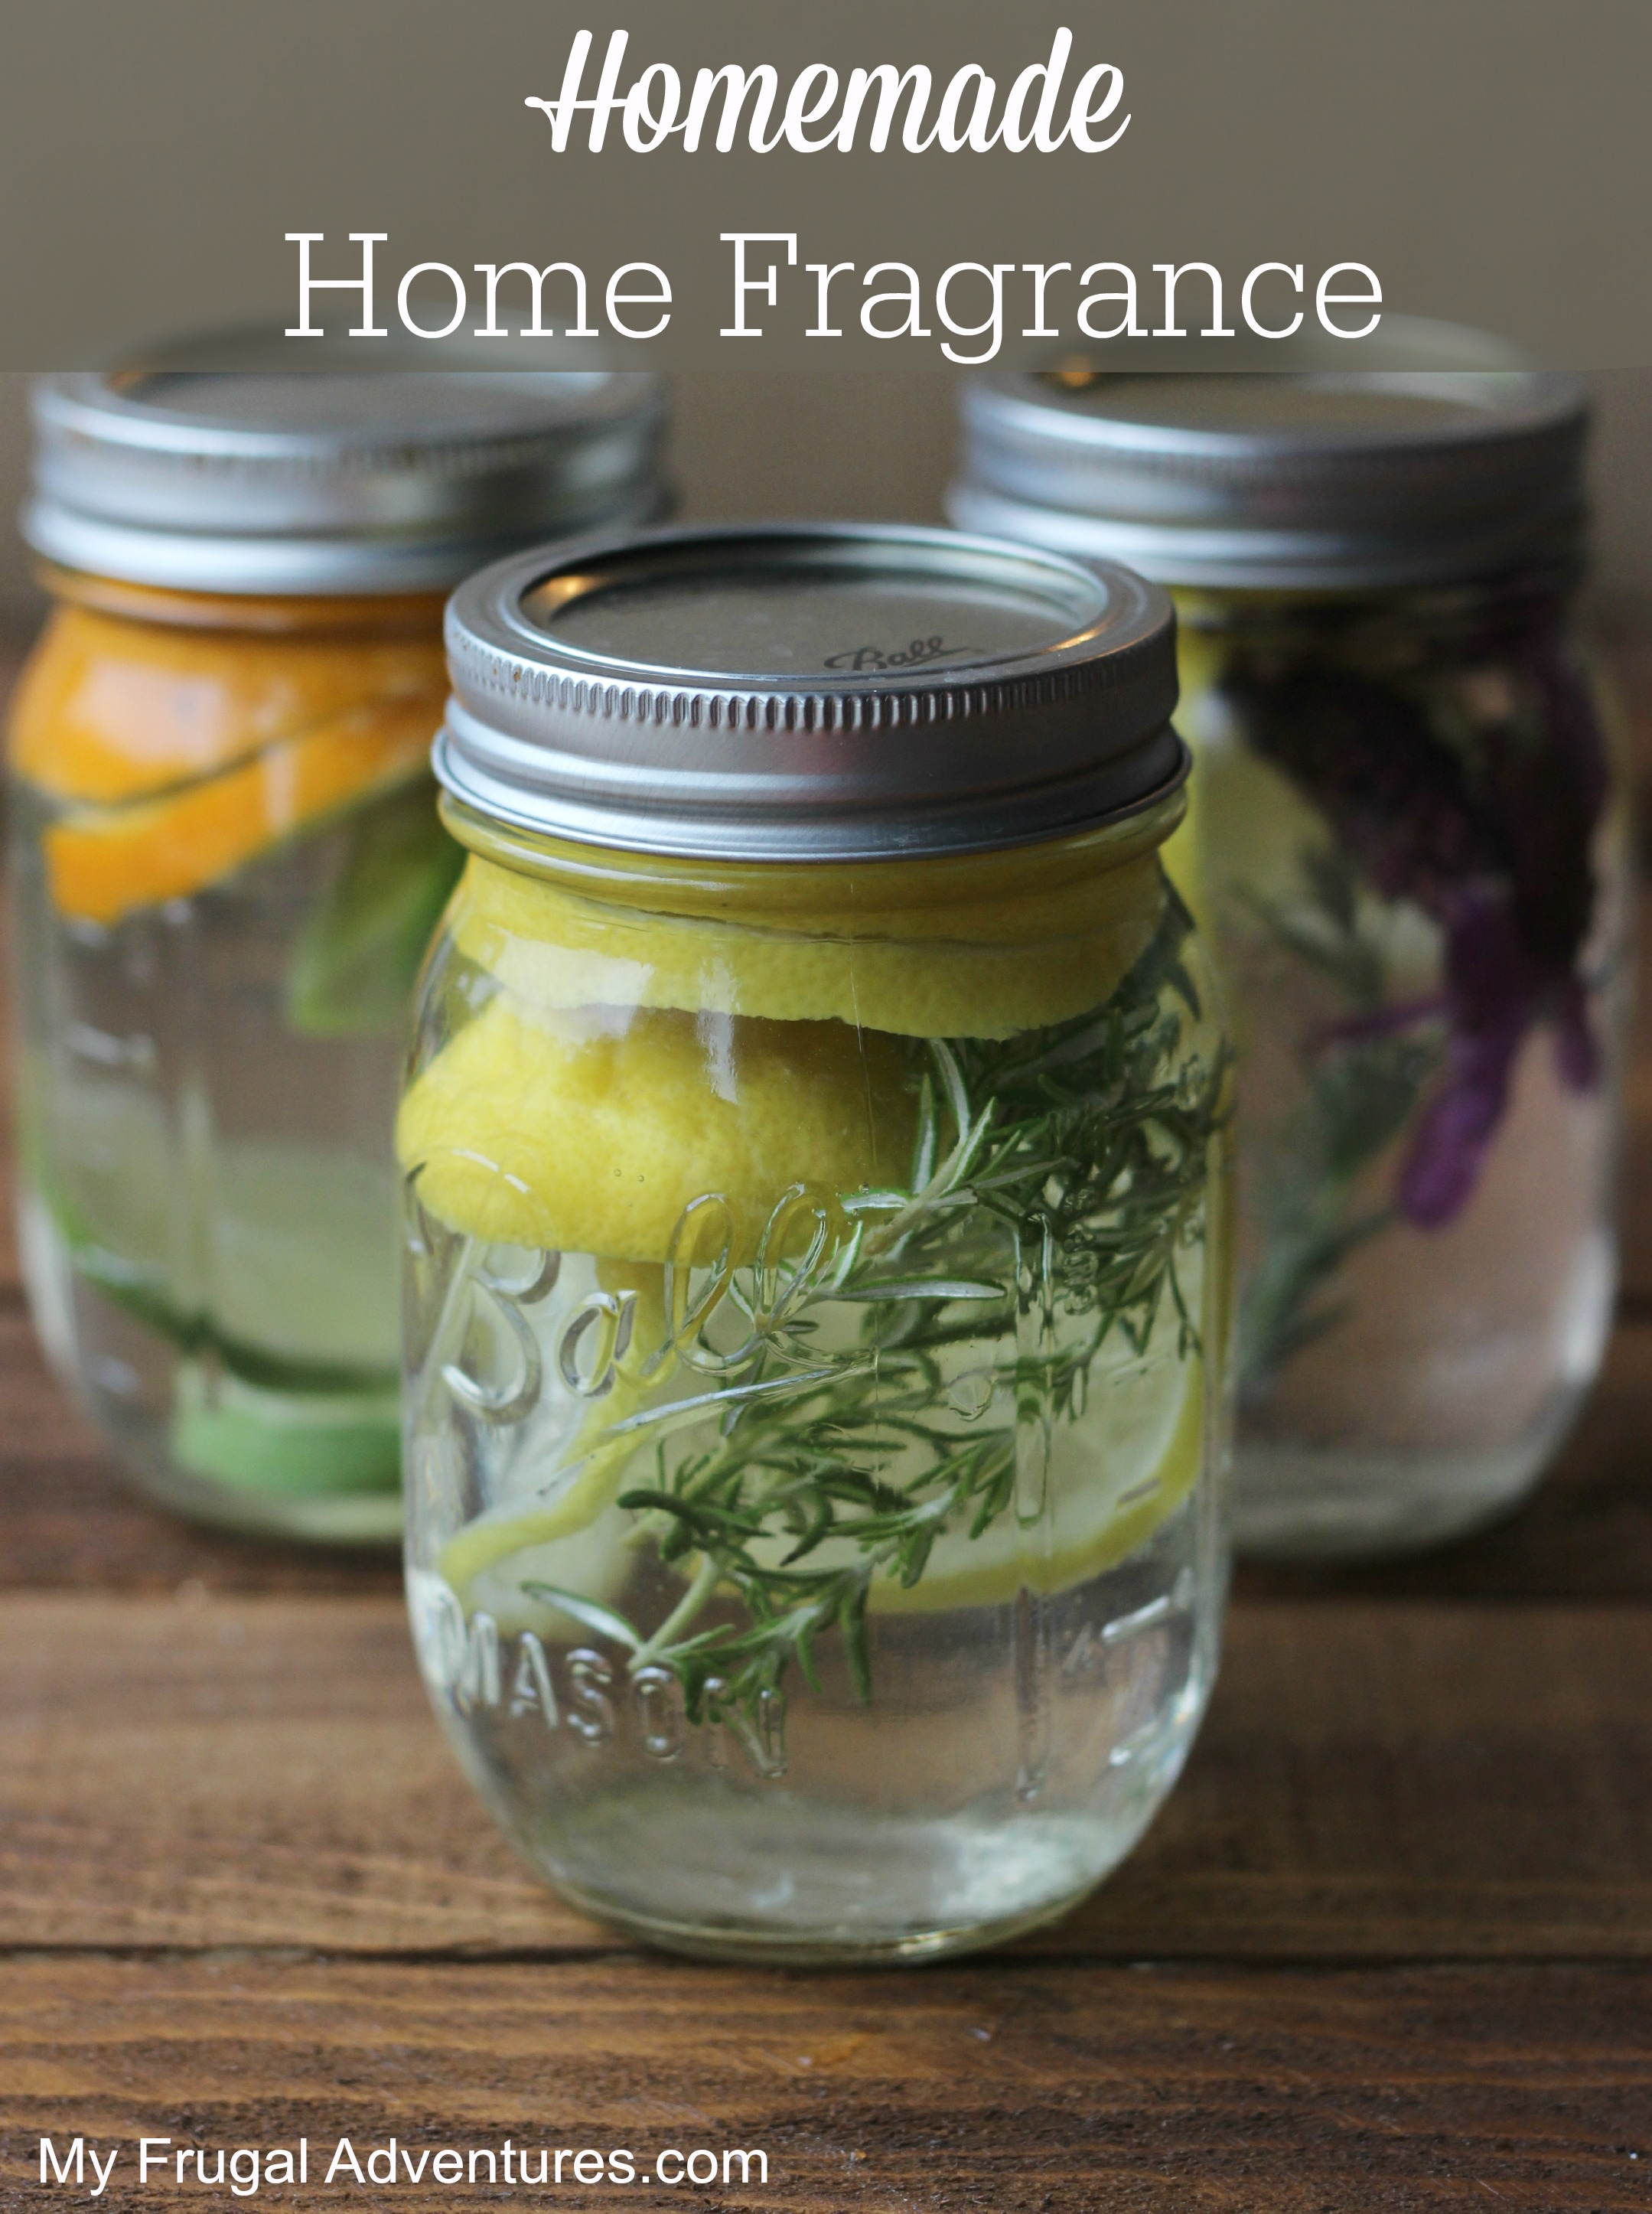 DIY Home Fragrance (like a Williams Sonoma Store)